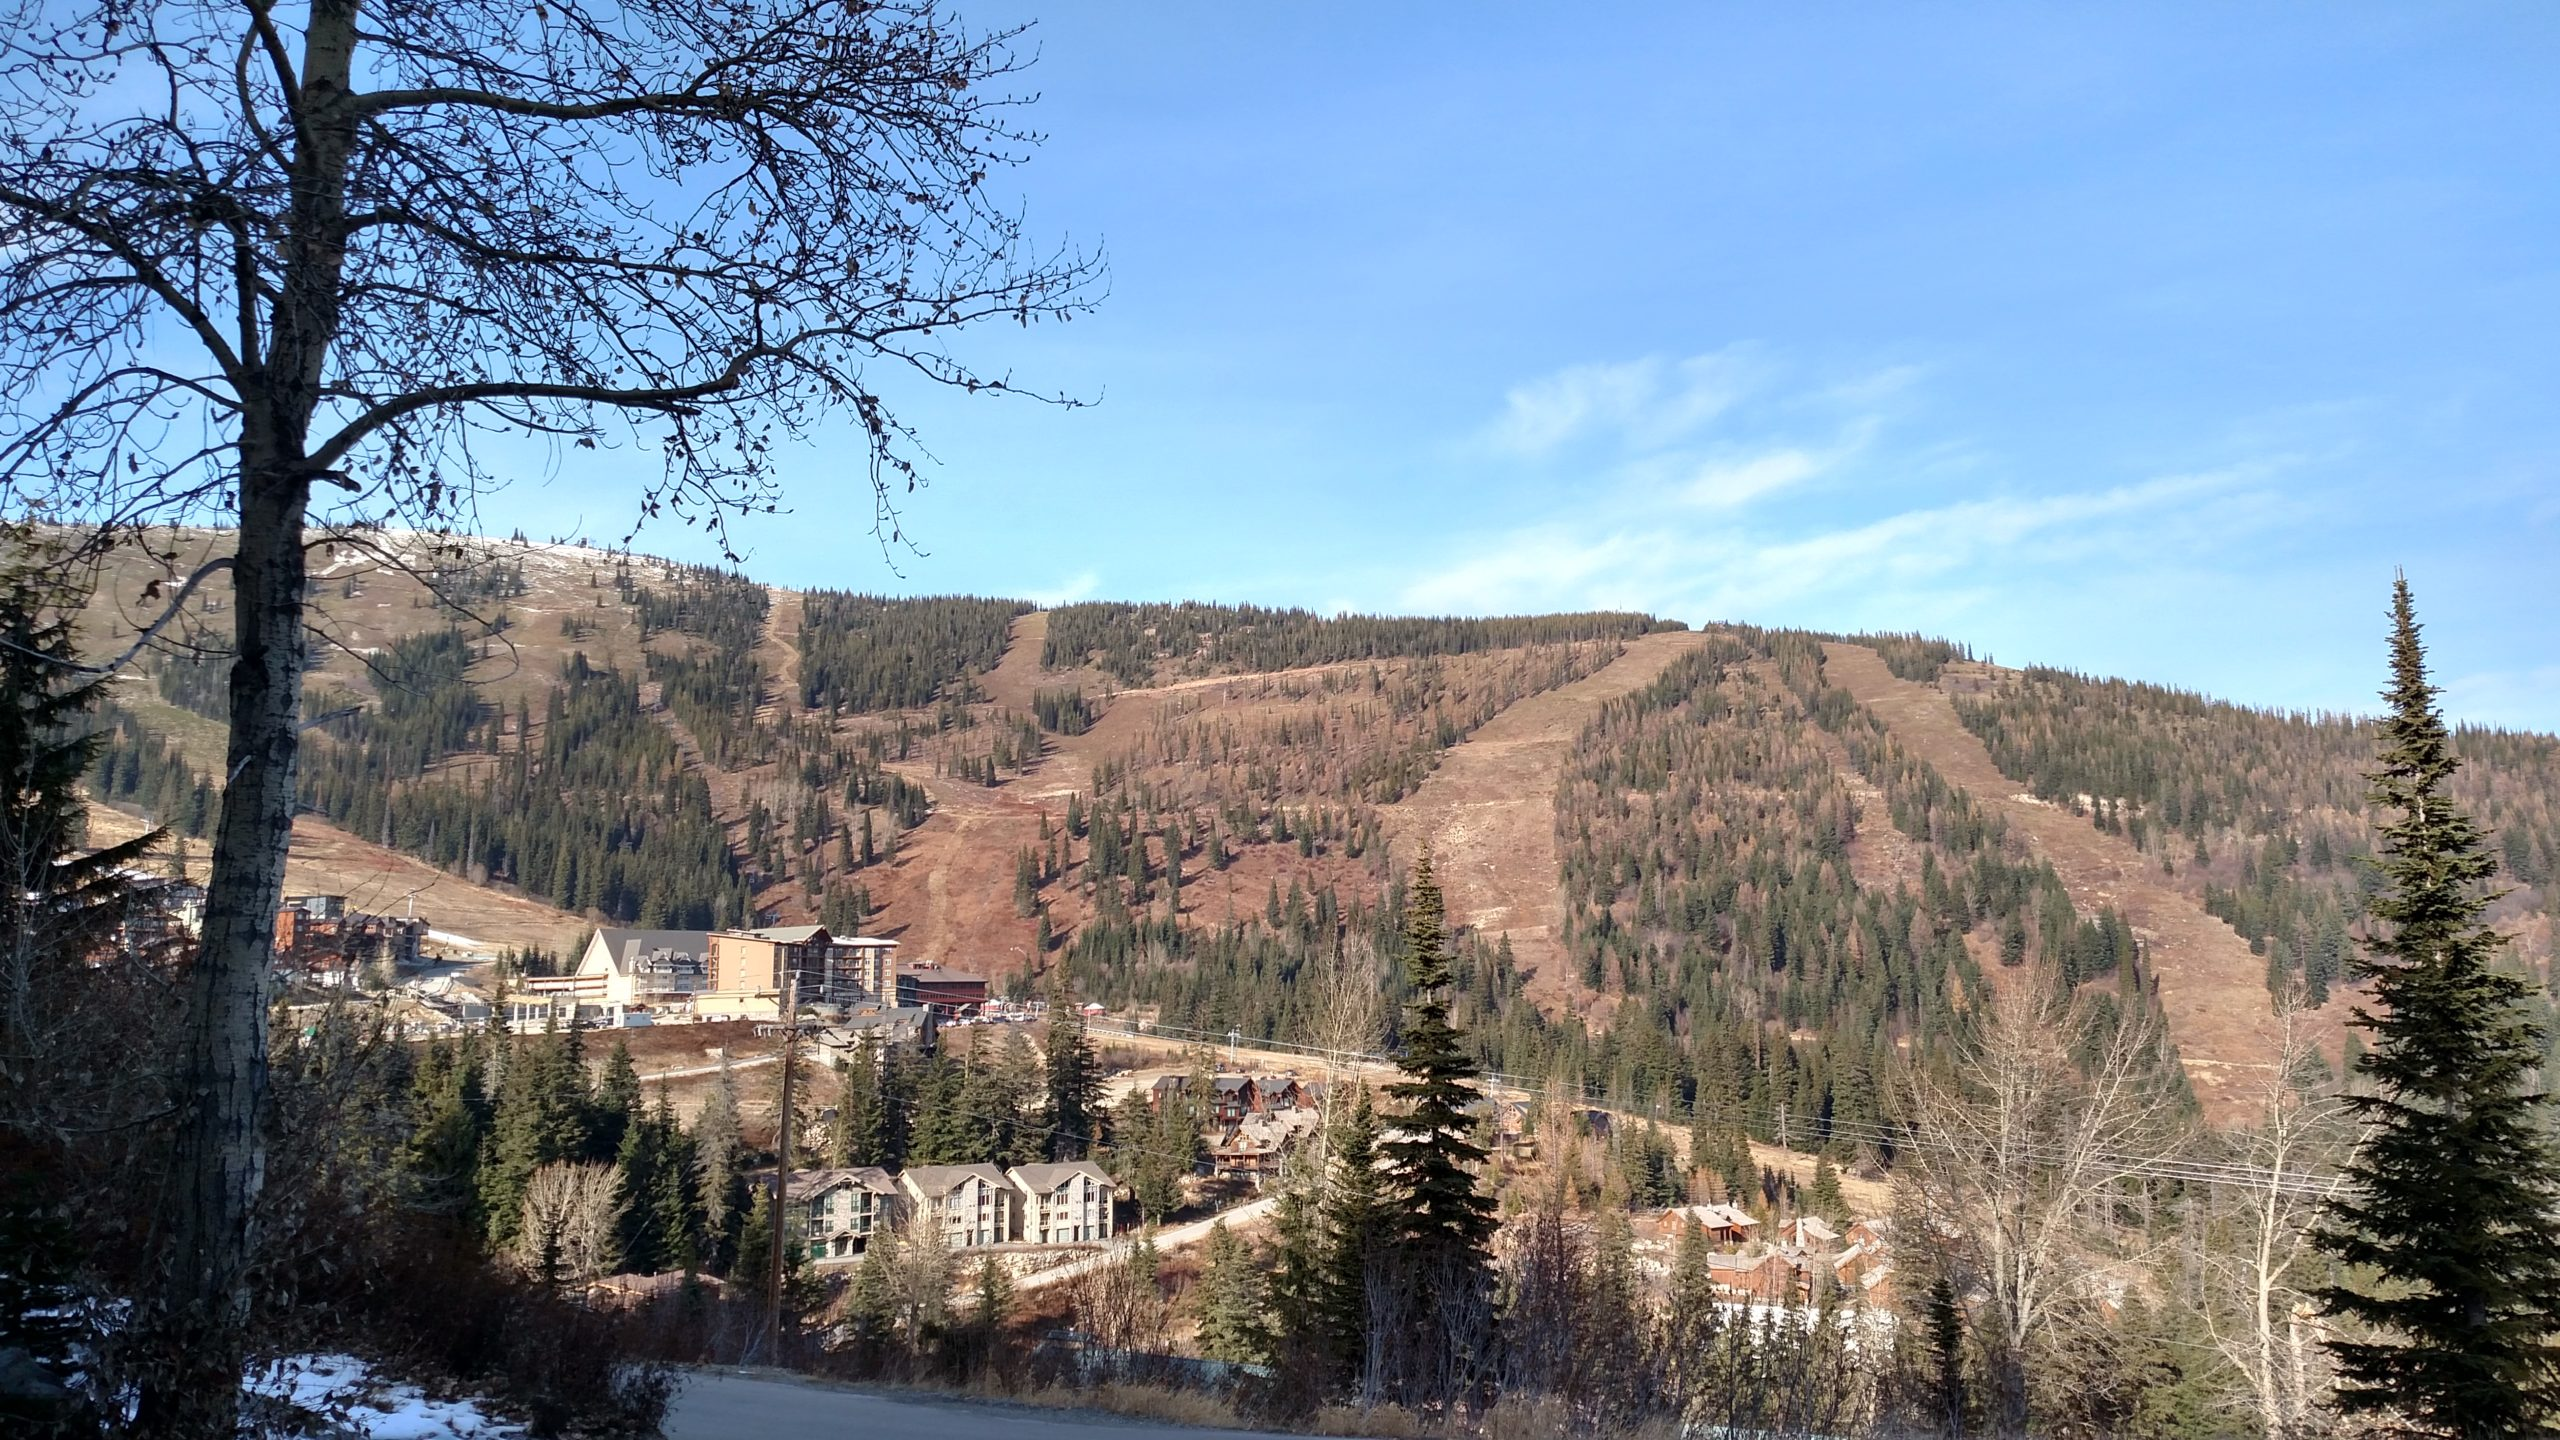 View of a mountain with ski runs that are not yet covered in snow